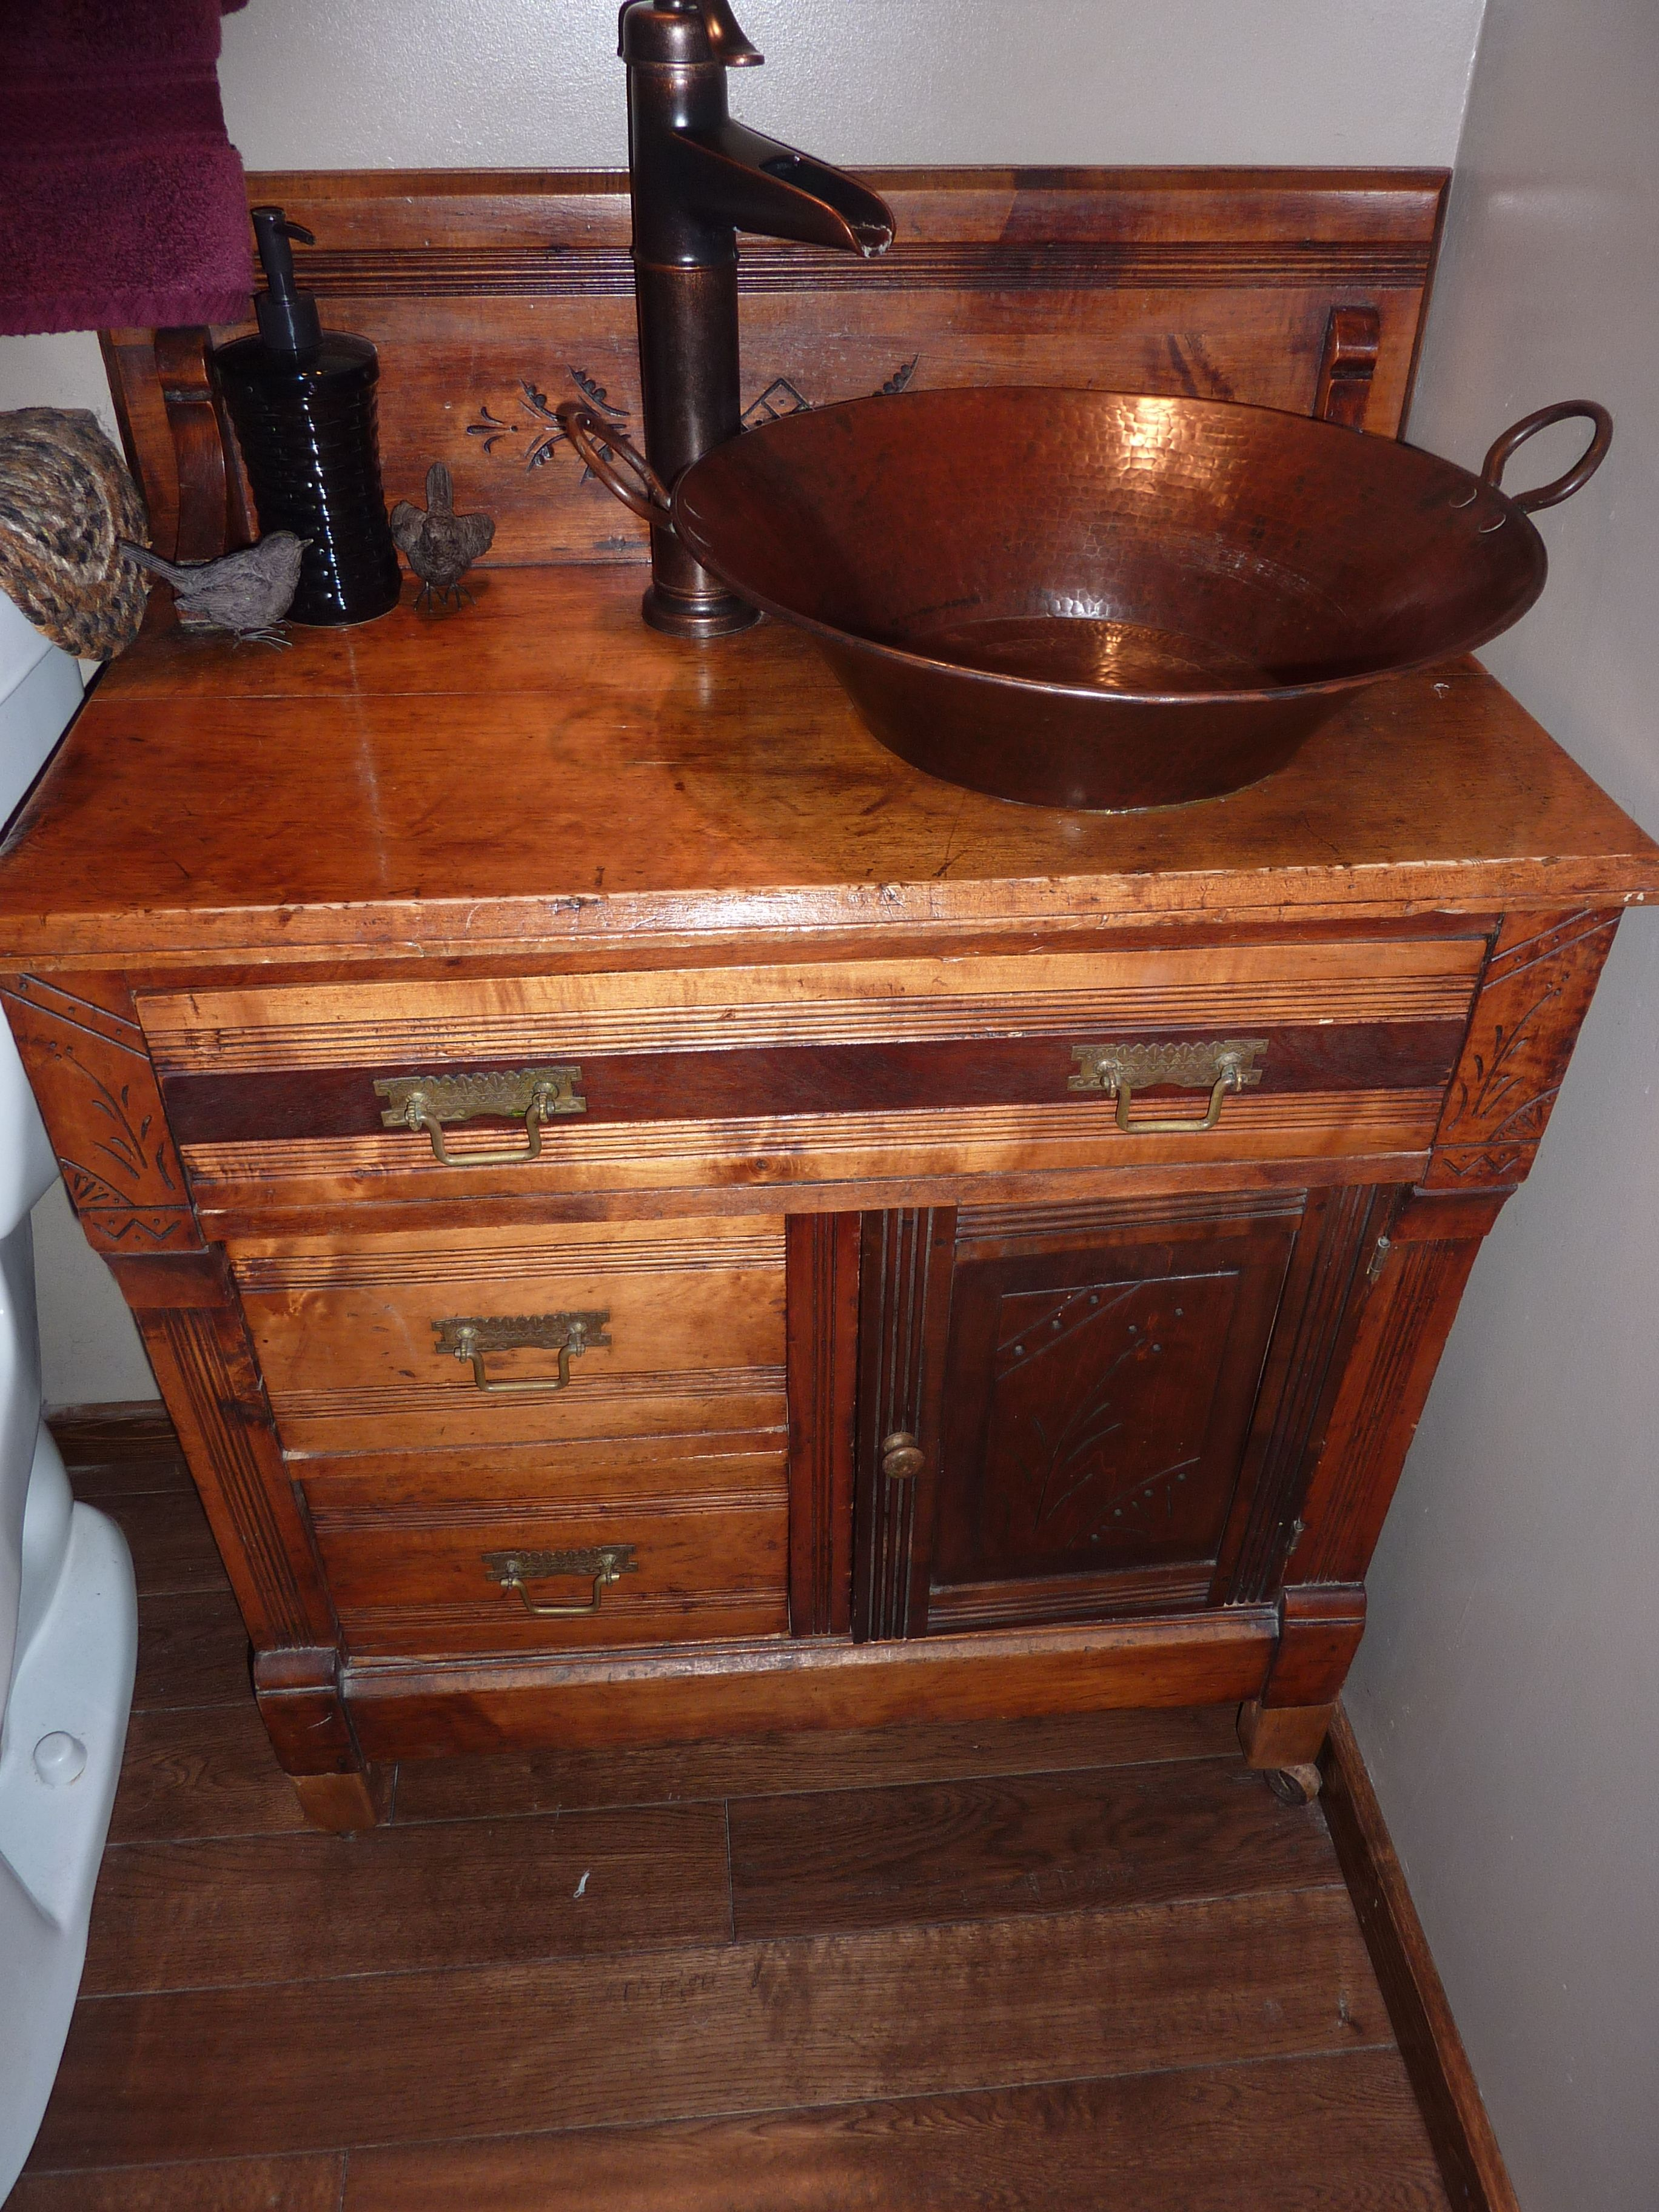 A 100 Flea Market Find Turned A Dry Sink Into A Bathroom Vanity A Copper Sink And Old Fashioned Faucet Bring It Back T Primitive Bathrooms Dry Sink Bathroom